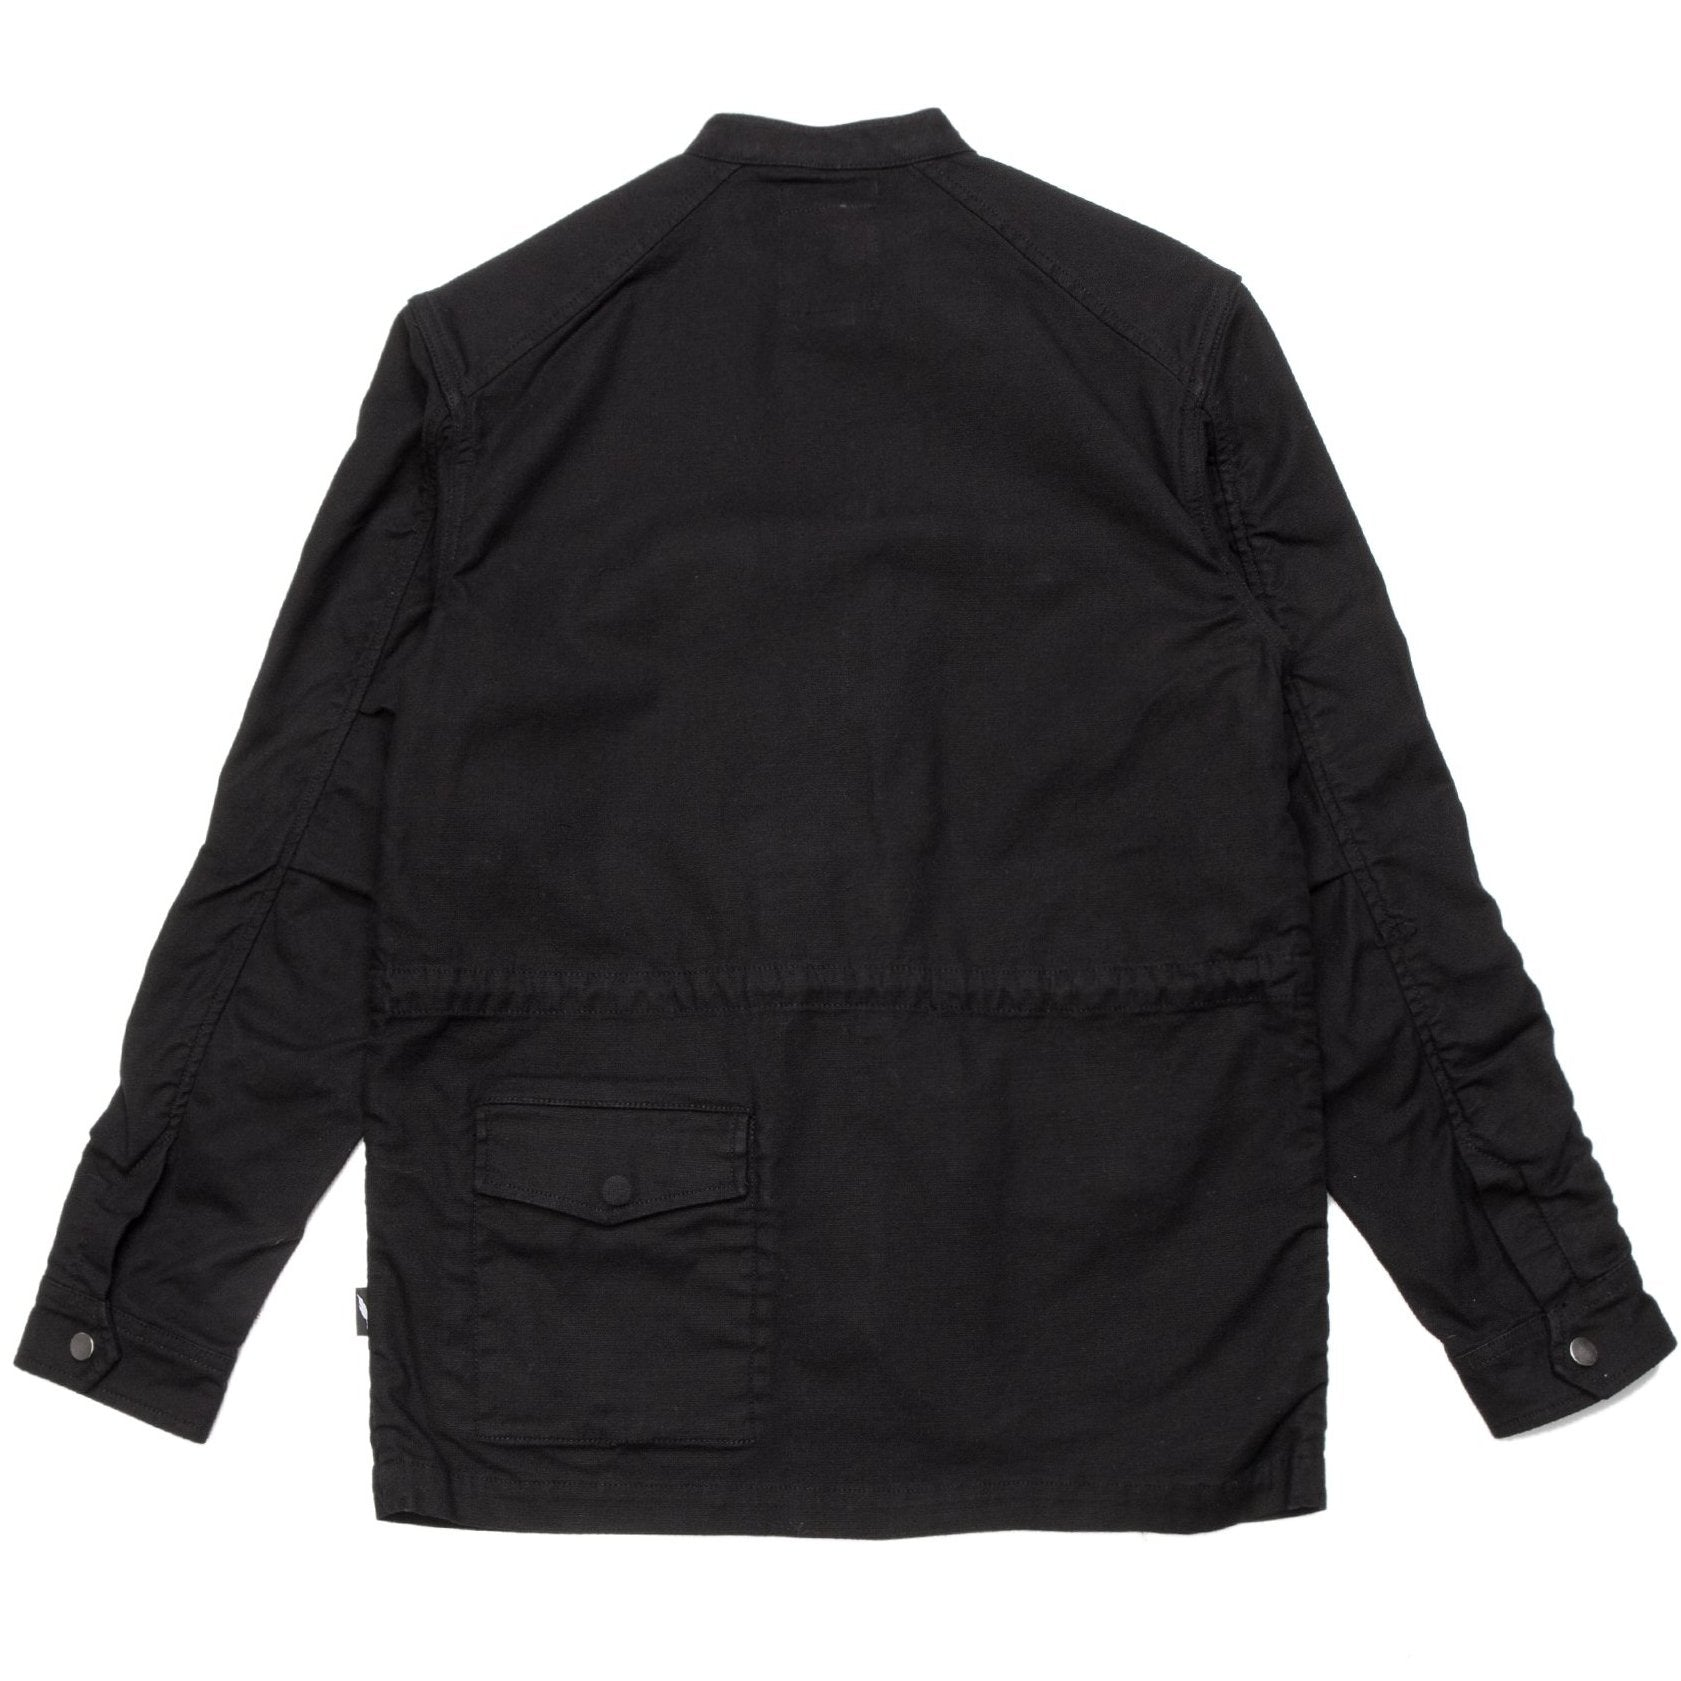 Denzel Woven Jacket (Black) - Publish